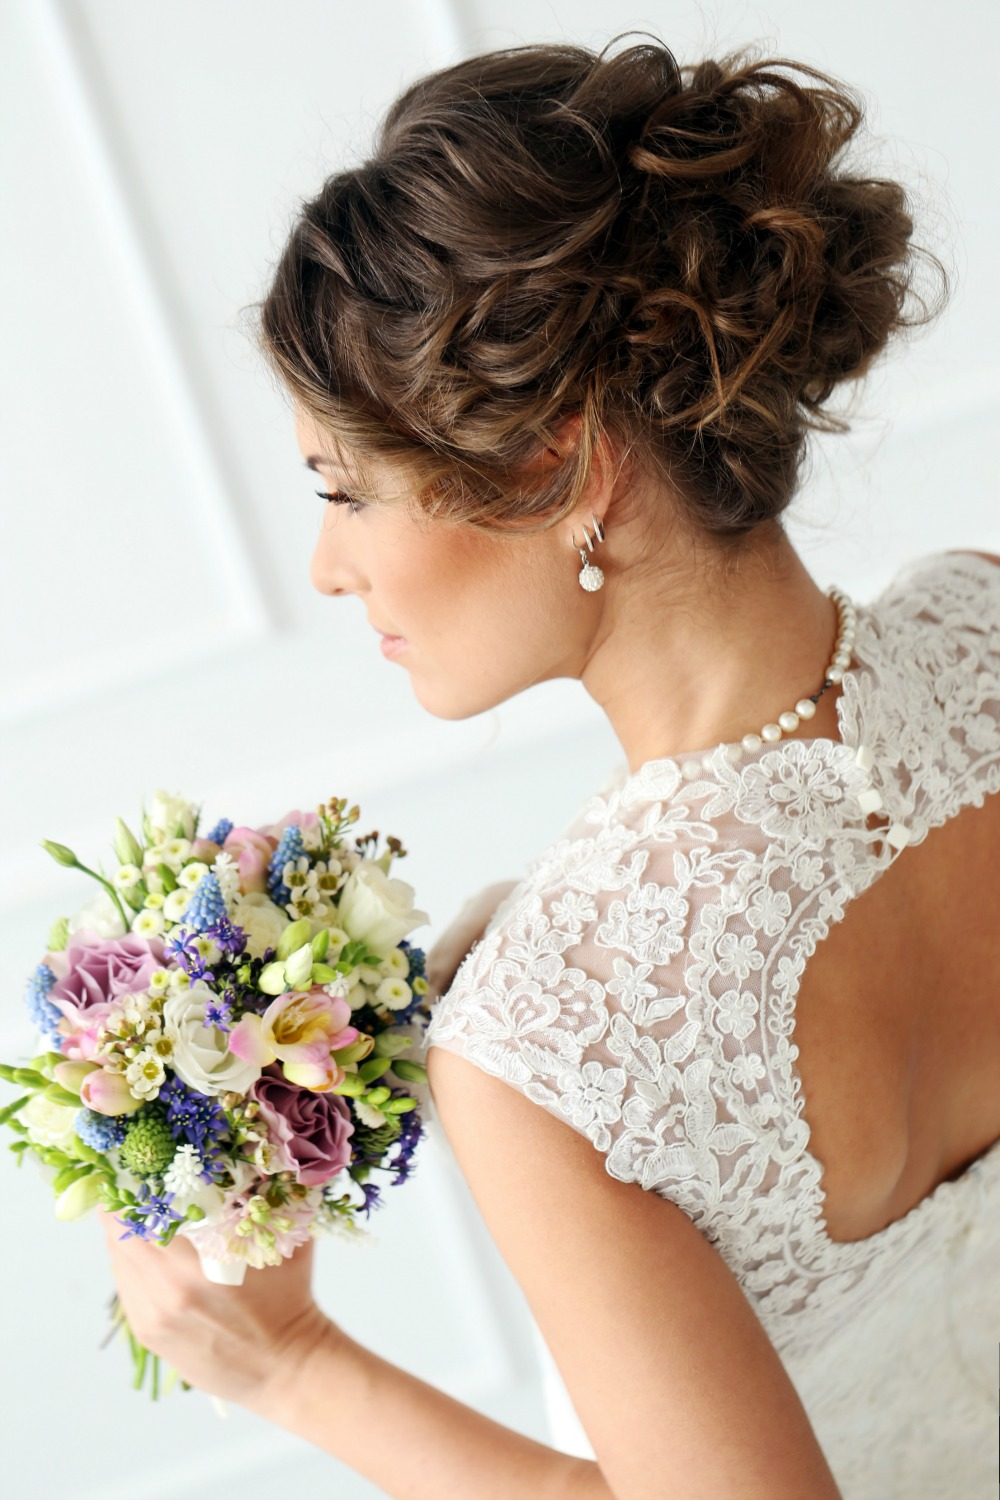 Pleasing 40 Wedding Hairstyles You39Ll Absolutely Want To Try Mom Fabulous Short Hairstyles Gunalazisus